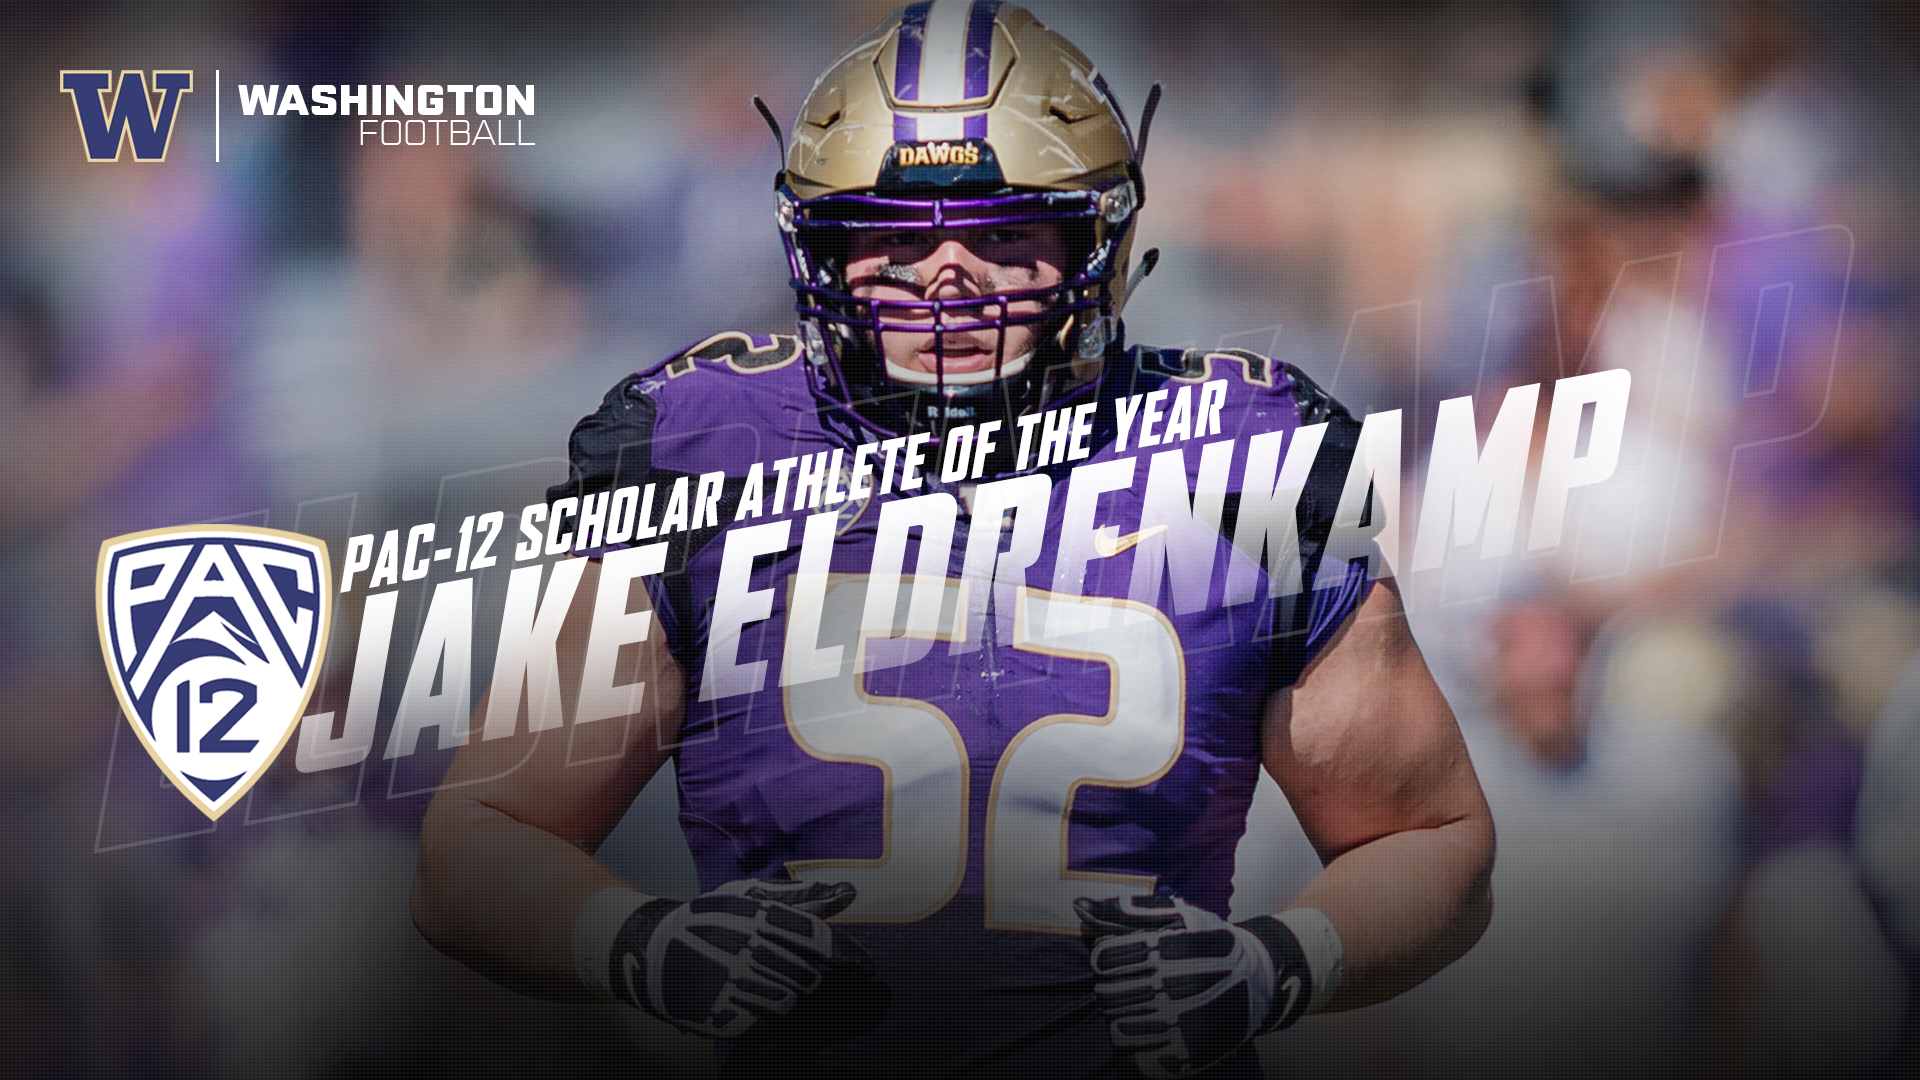 competitive price 8d63b 11f04 Eldrenkamp Named Pac-12 Scholar-Athlete Of The Year ...